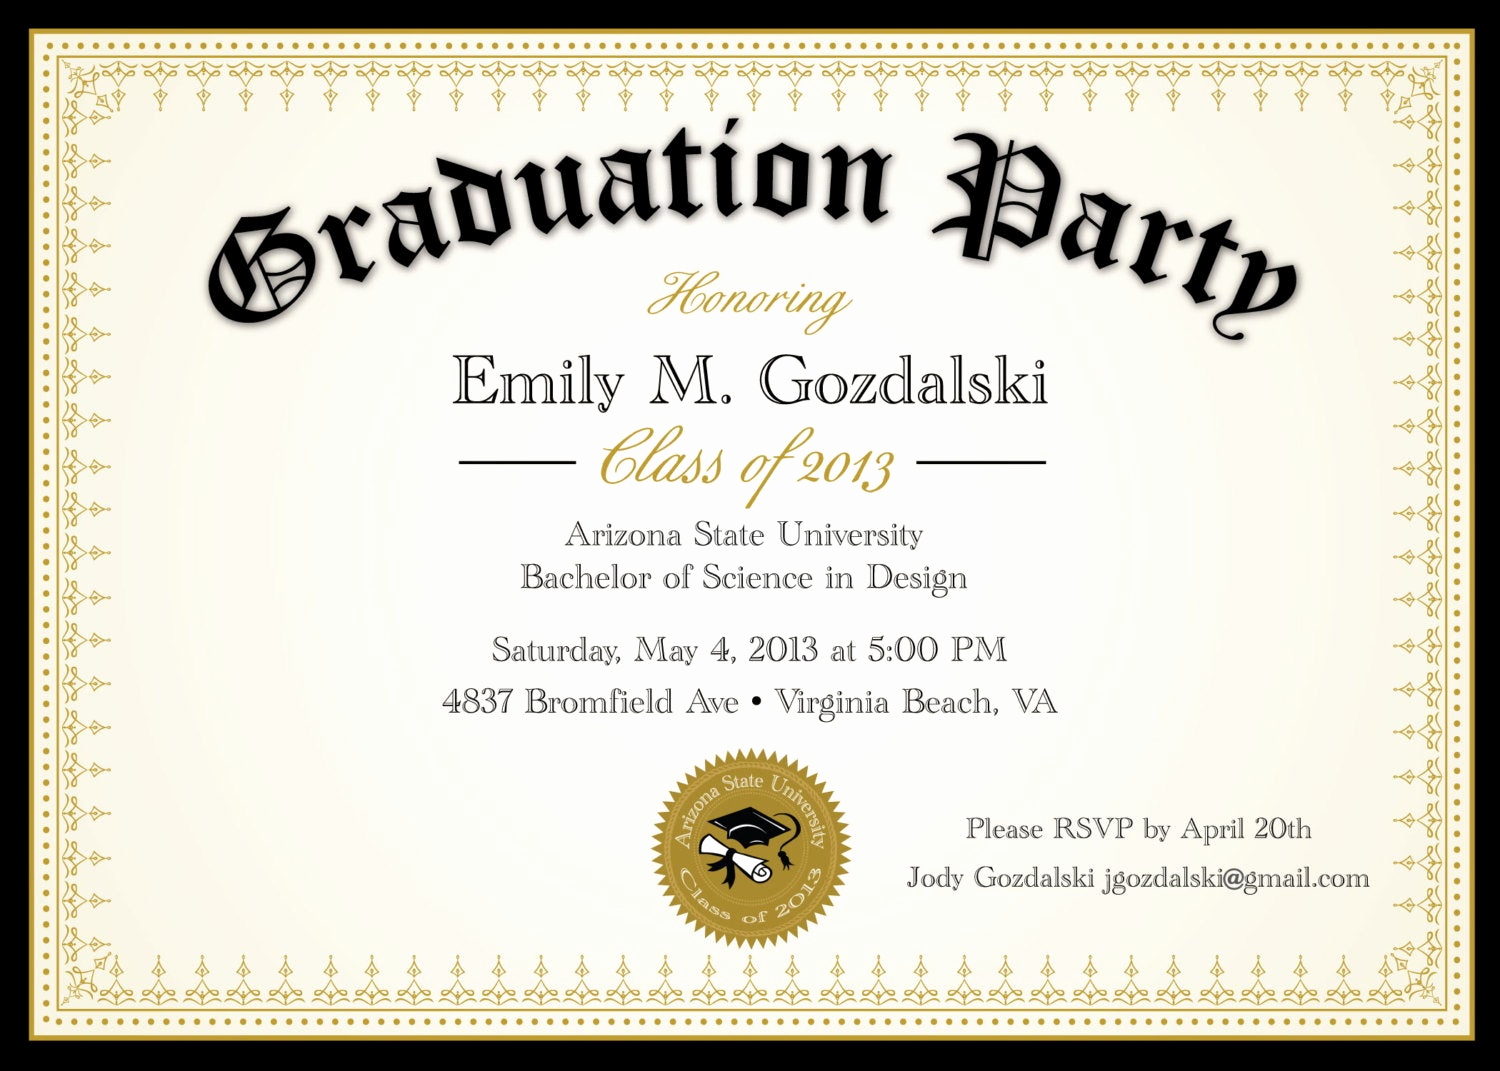 Graduation Announcement and Party Invitation Lovely Diploma Graduation Party Invitations Grad by Announceitfavors